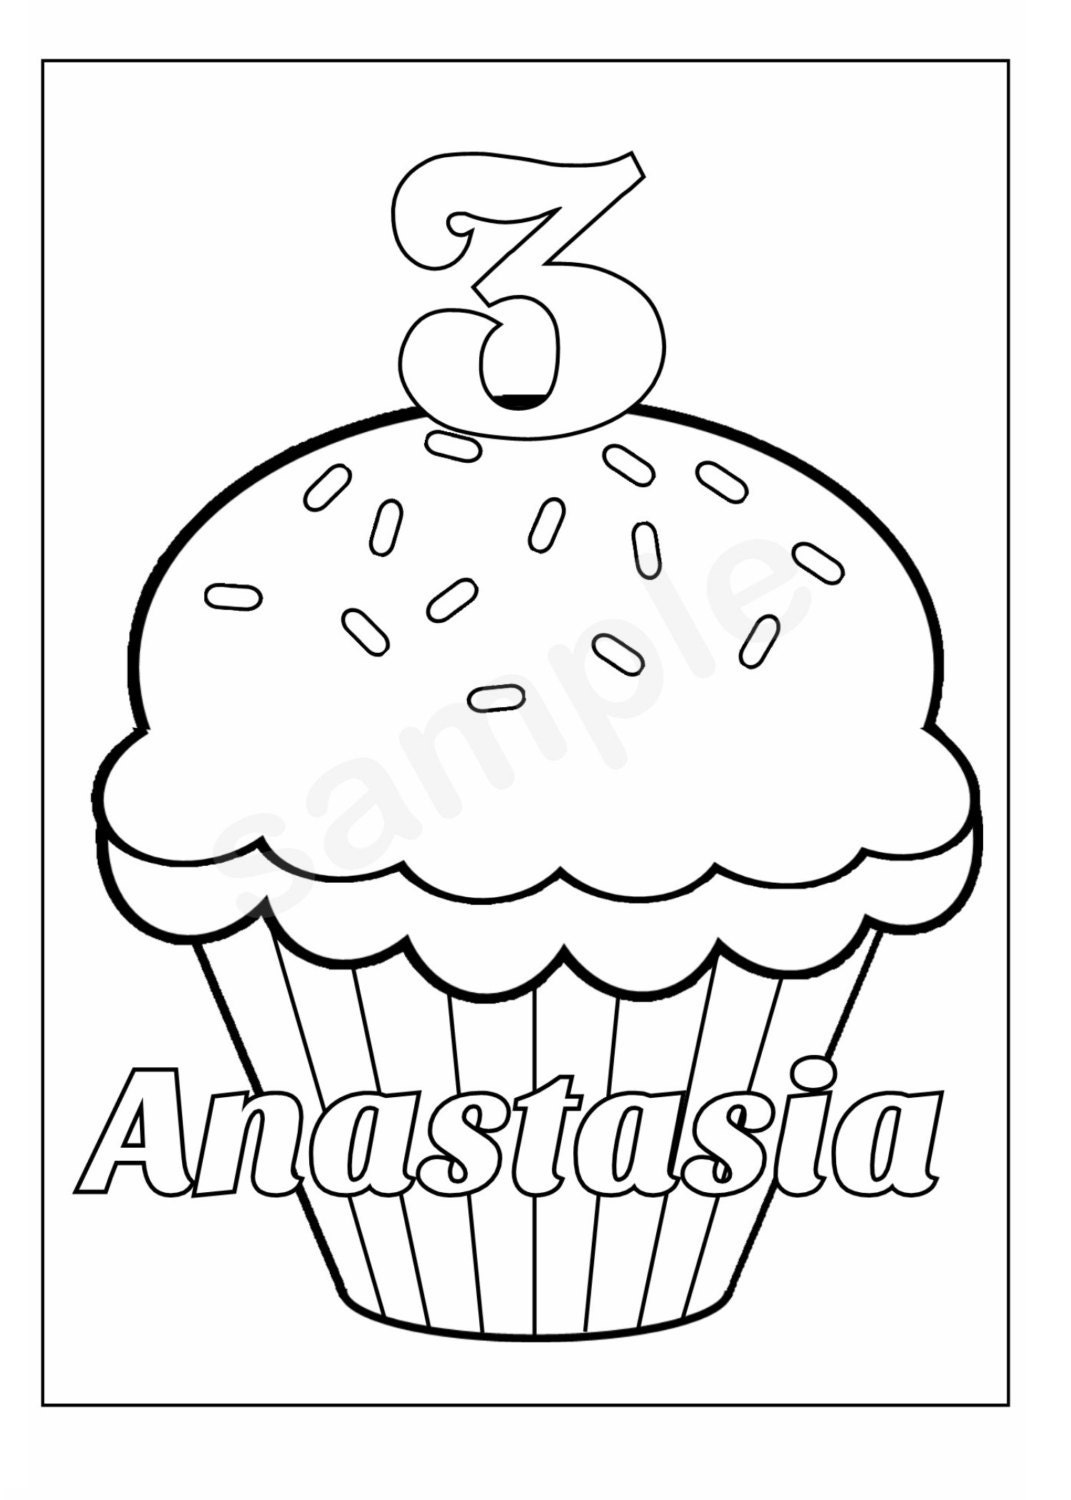 Personalized Printable Birthday Cupcake Cup Cake Party Favor